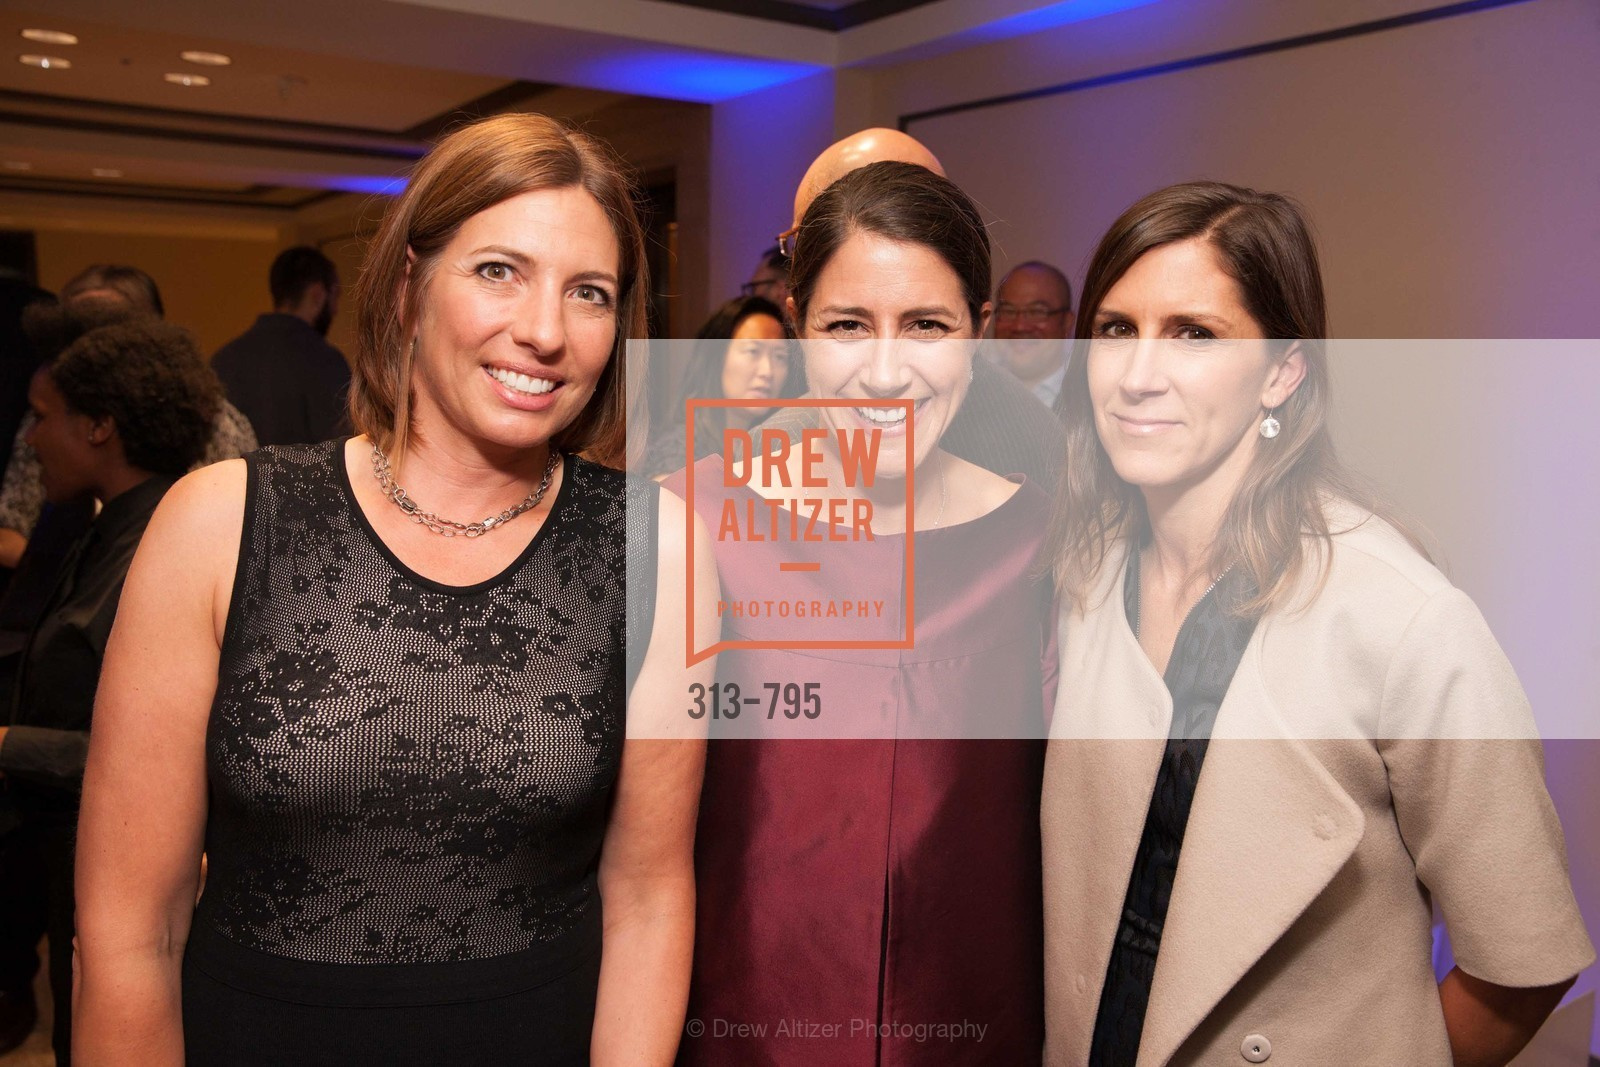 Carolyn Holtich, Elizabeth Sparks, Susan MacKnight, COMPASS FAMILY SERVICES Annual Spring Benefit:  Every Family Needs A Home, US, April 23rd, 2015,Drew Altizer, Drew Altizer Photography, full-service event agency, private events, San Francisco photographer, photographer California